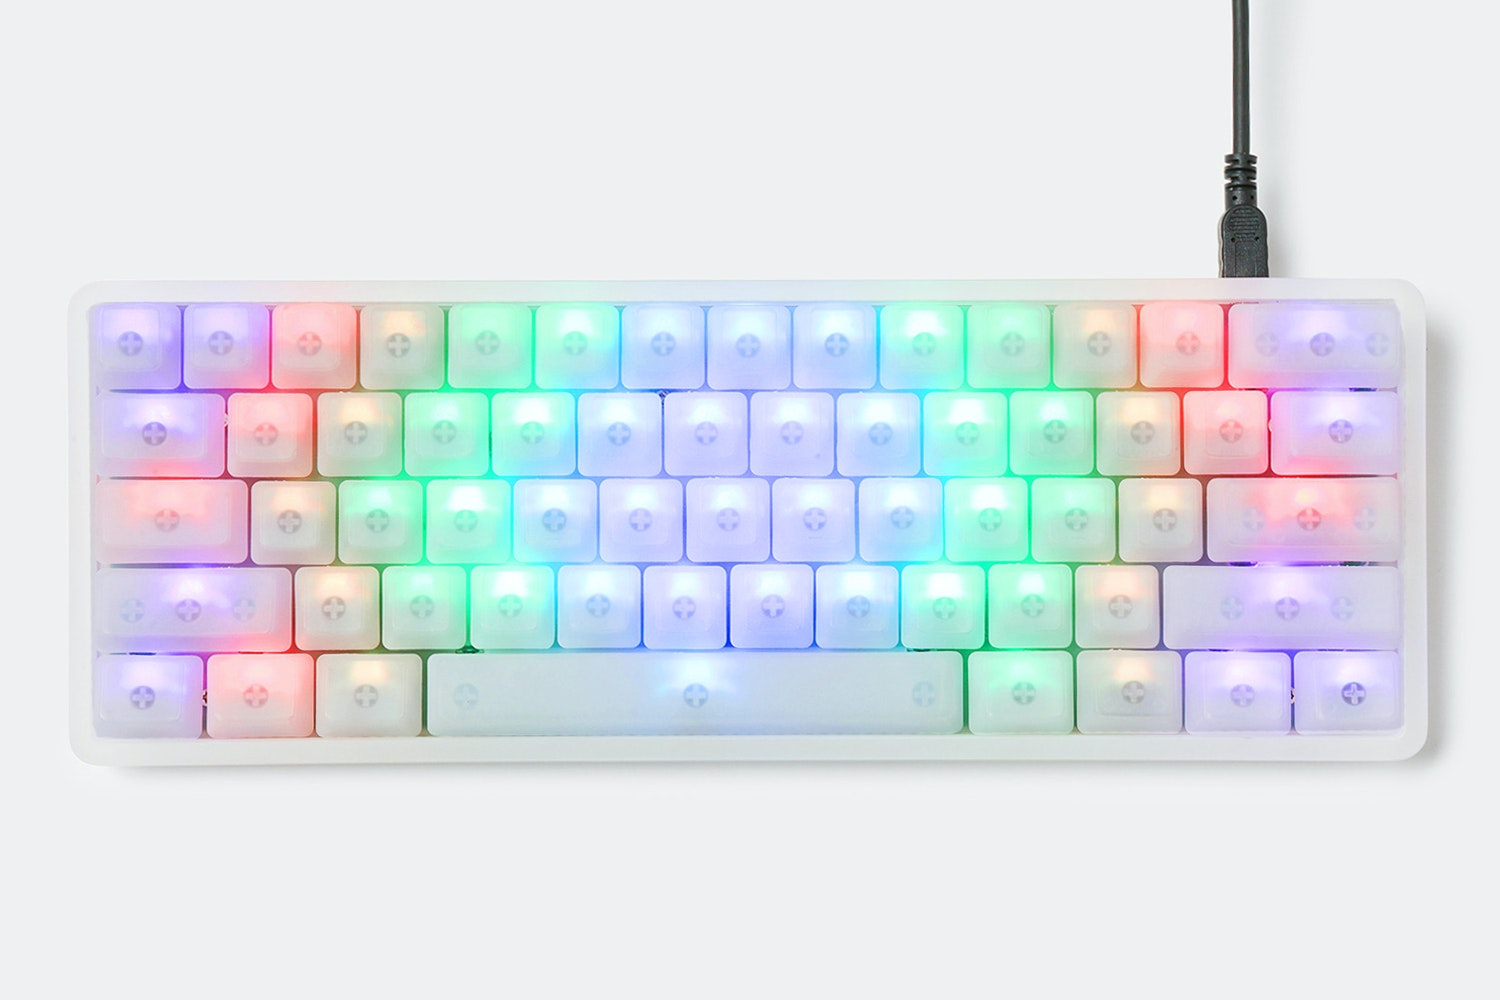 APT Hall Effect Mechanical Keyboard